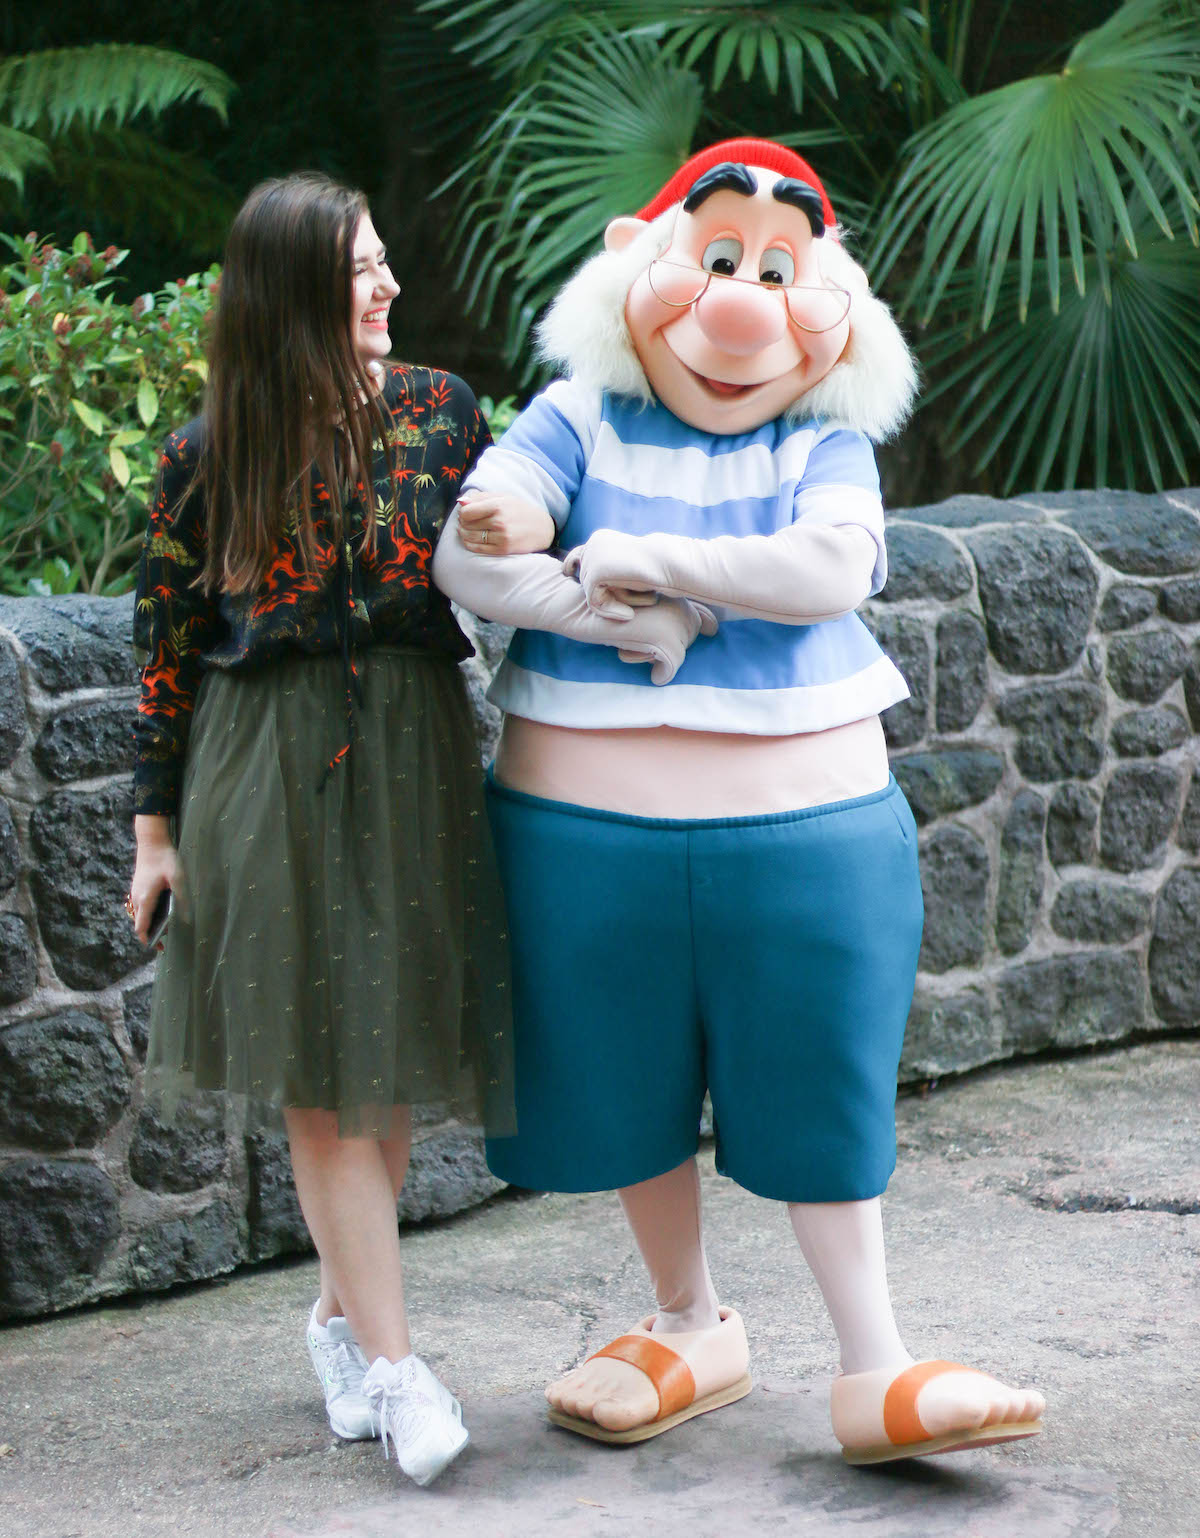 mr-smee-disneyland-paris-meeting-point-treffen-peter-pan